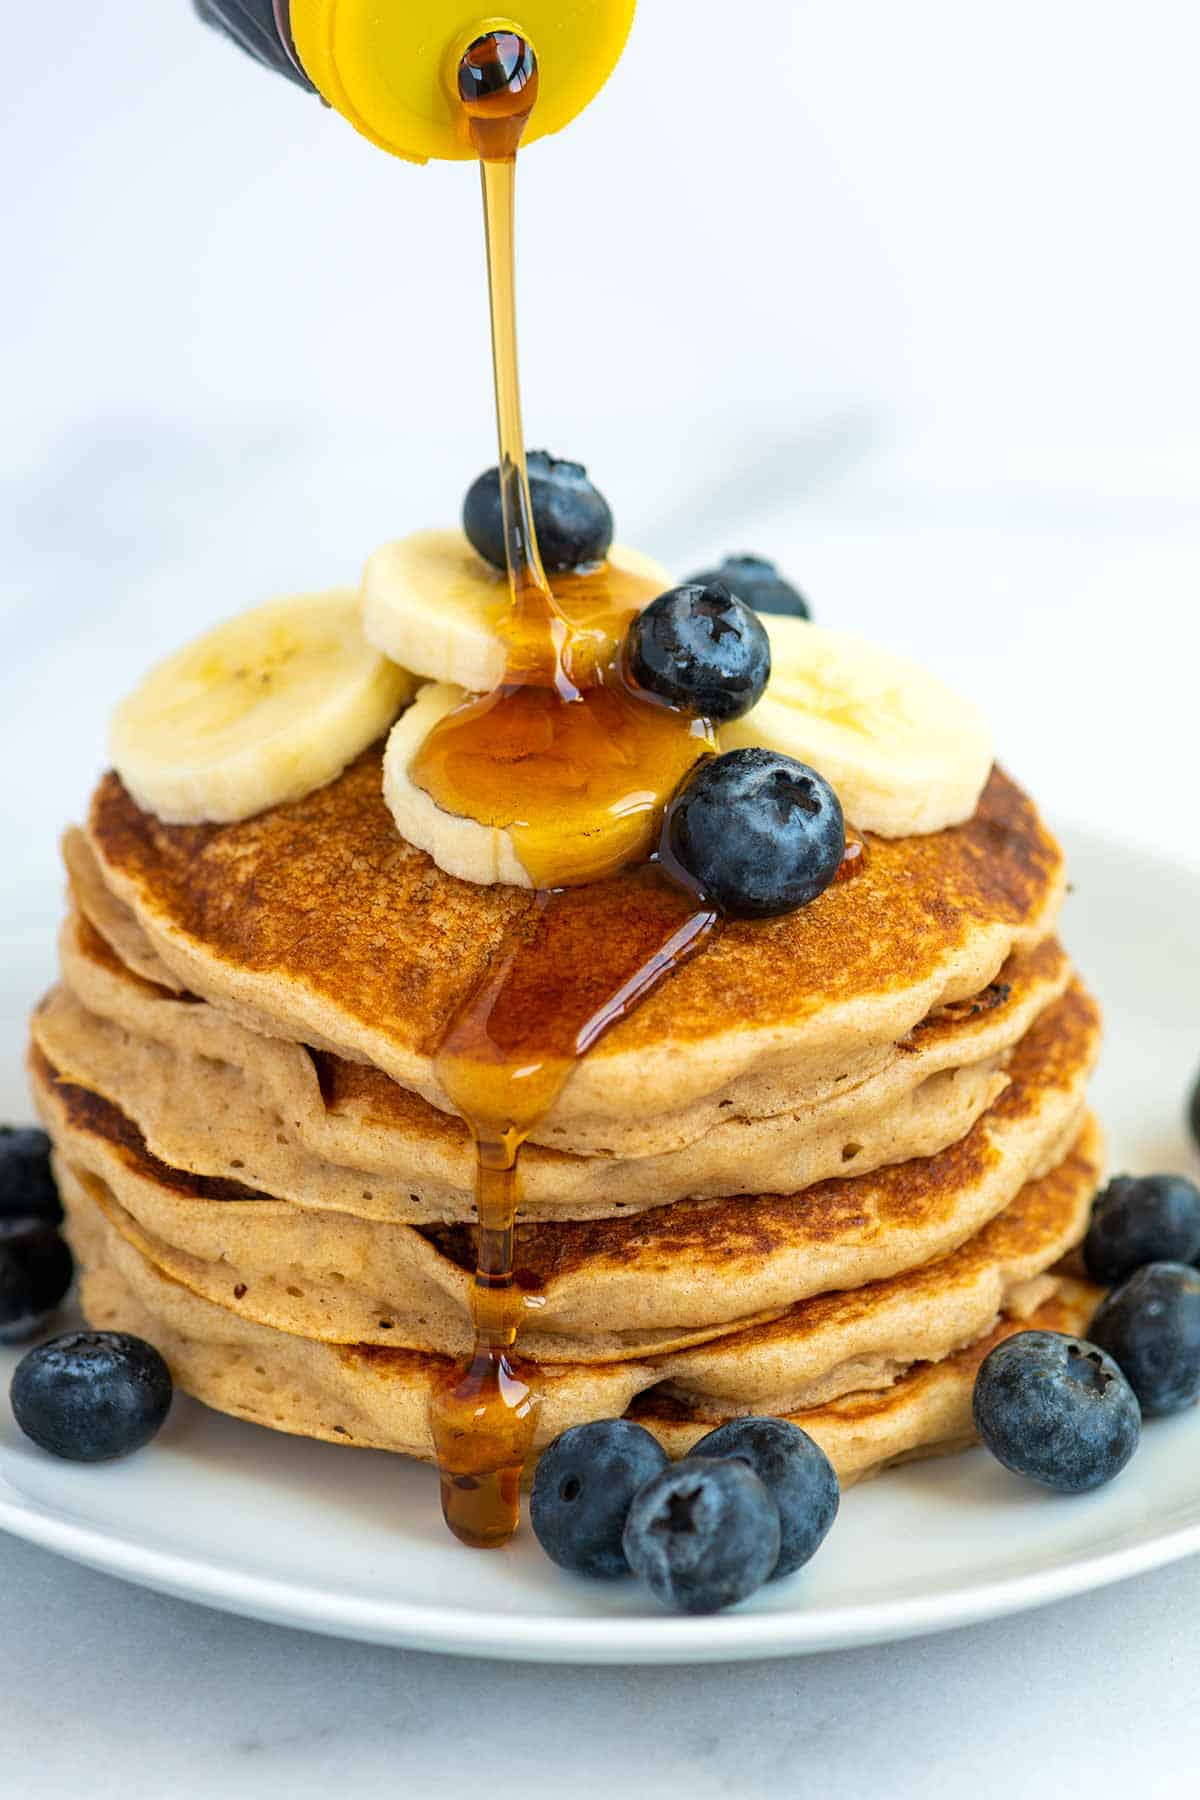 Serving Vegan Pancakes